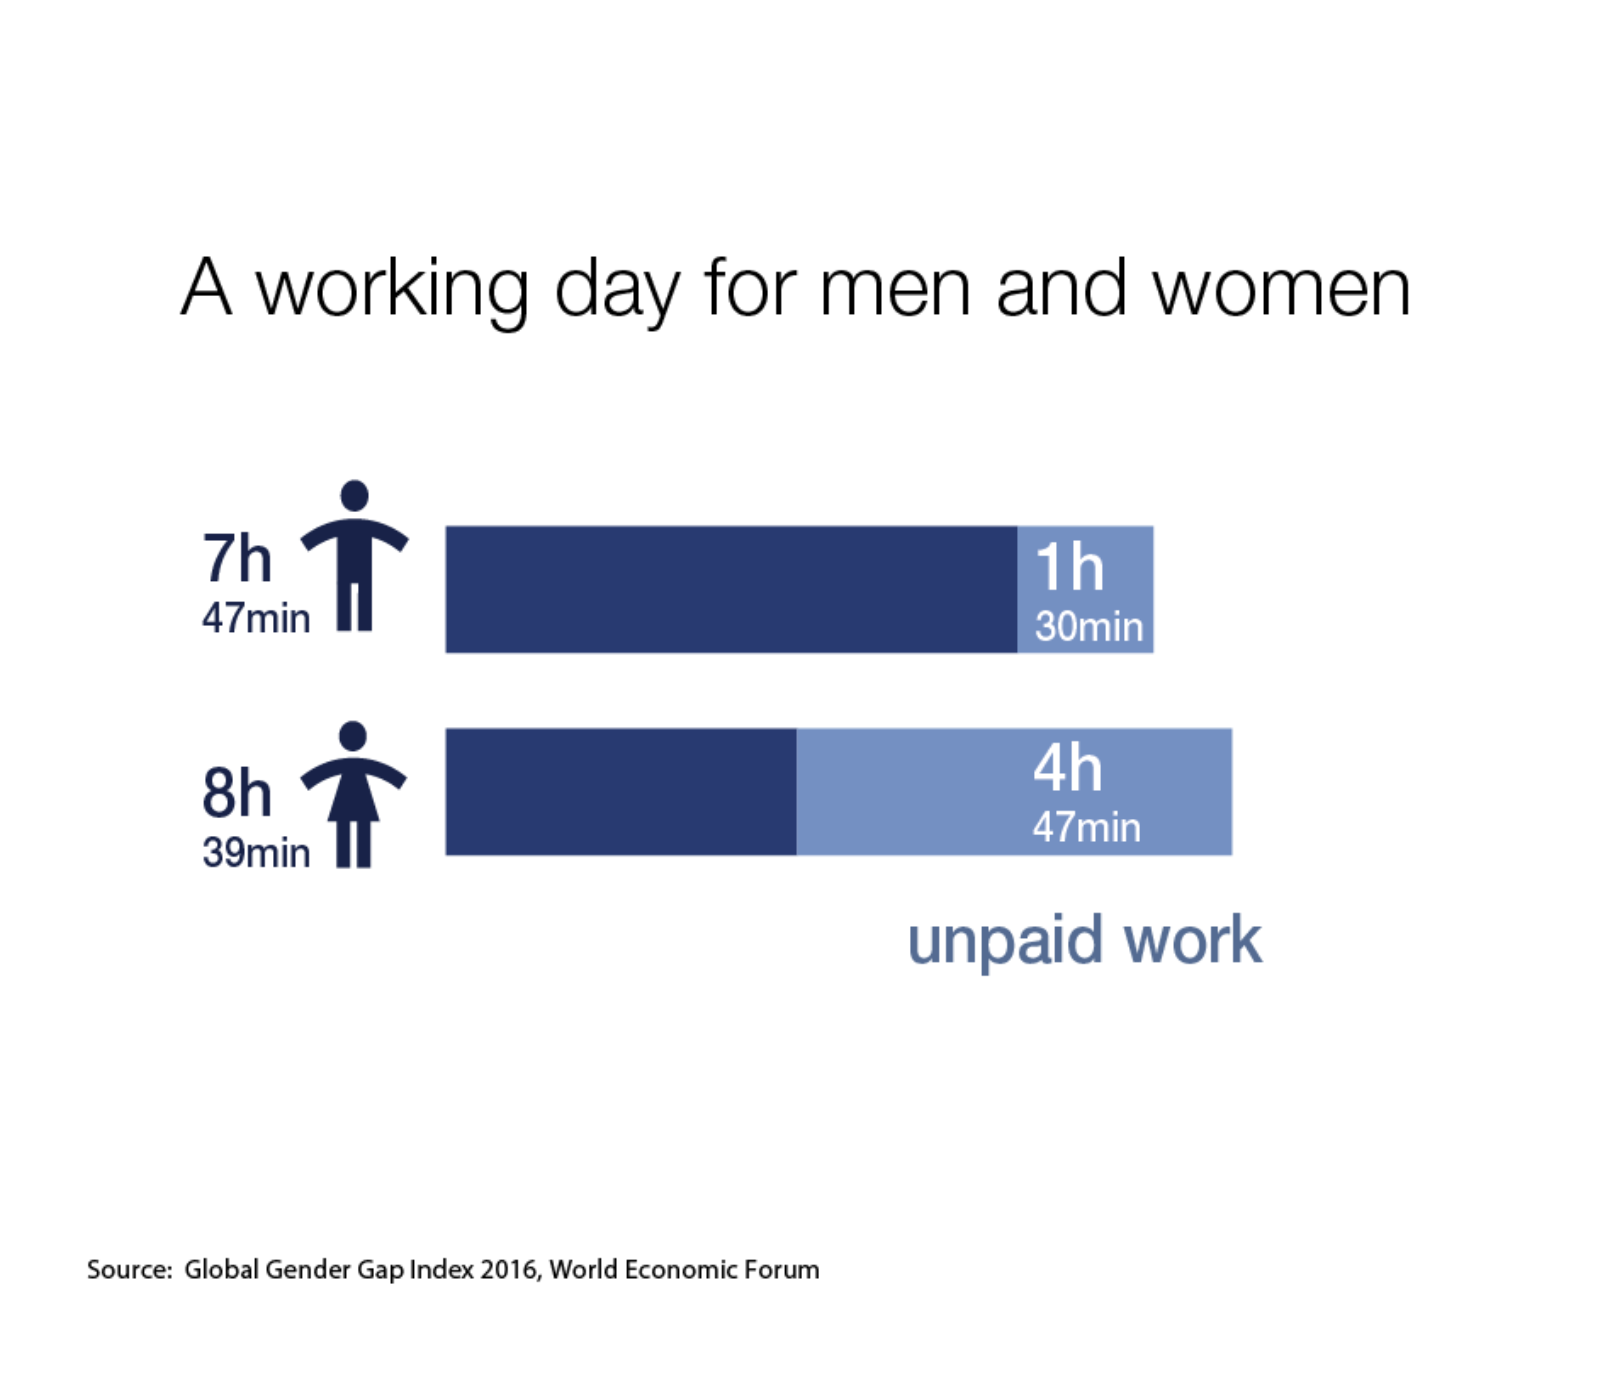 All in a day's work means different things to the average man or woman.